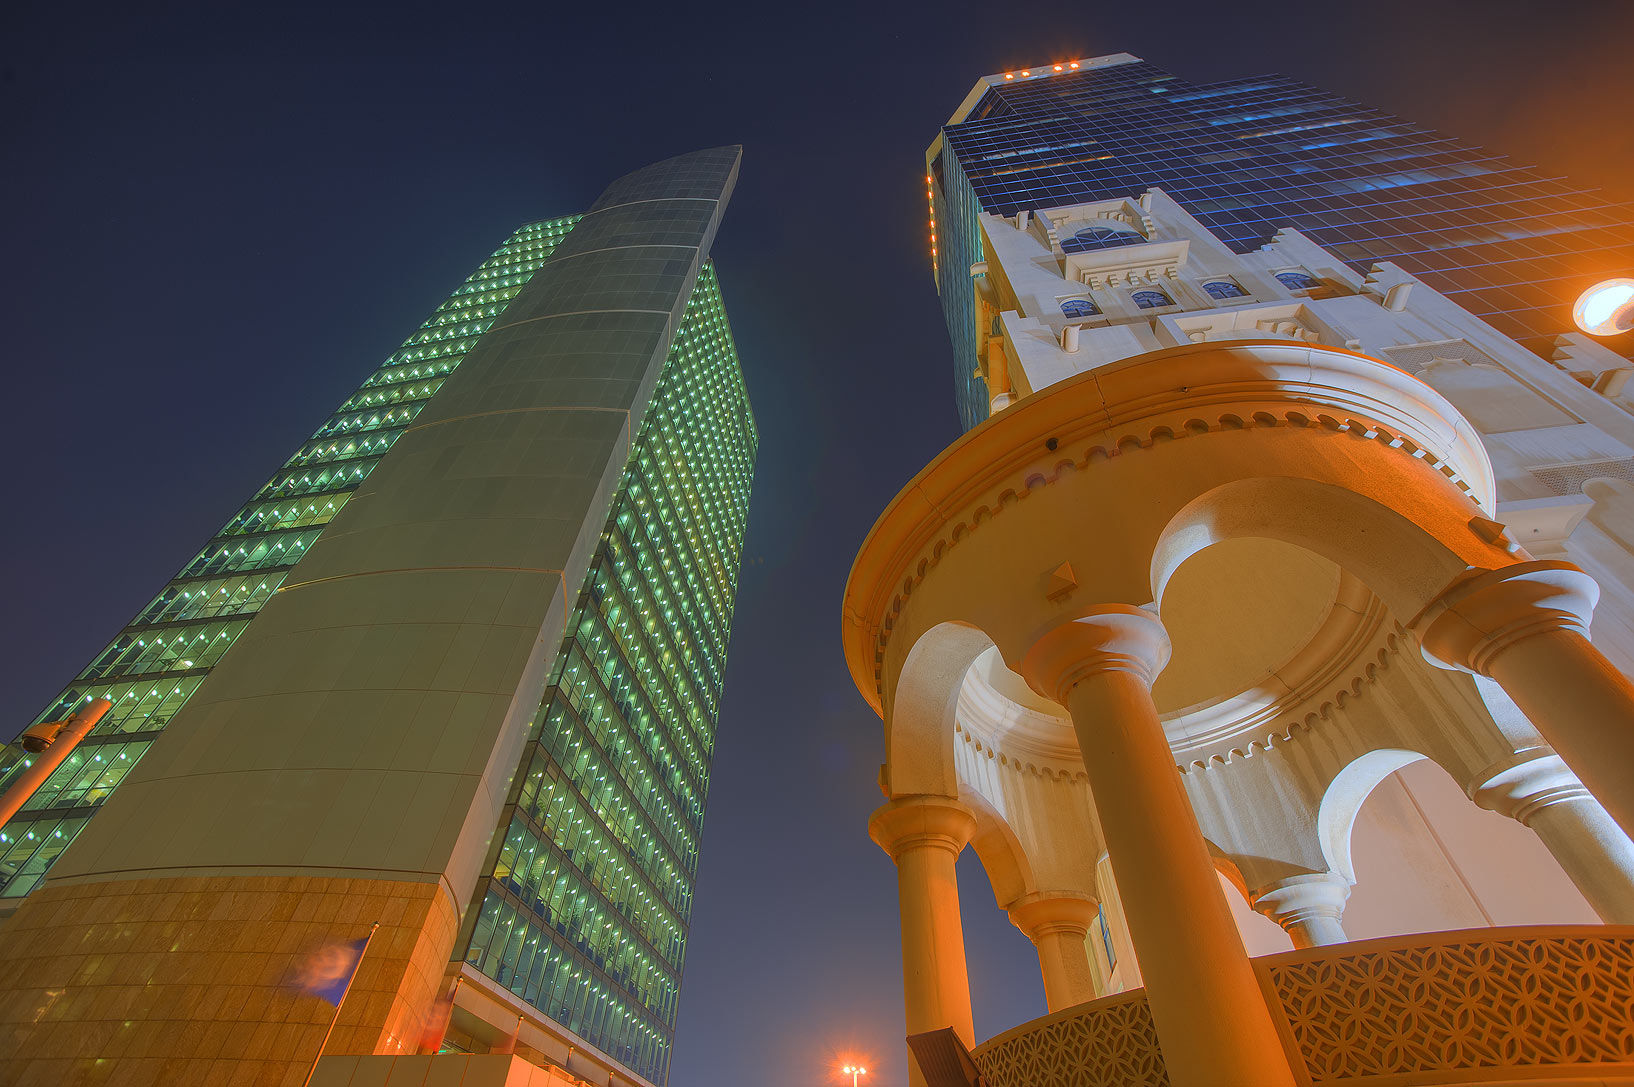 Commercial Bank and Ministry of Labour and Social Affairs towers. Doha, Qatar